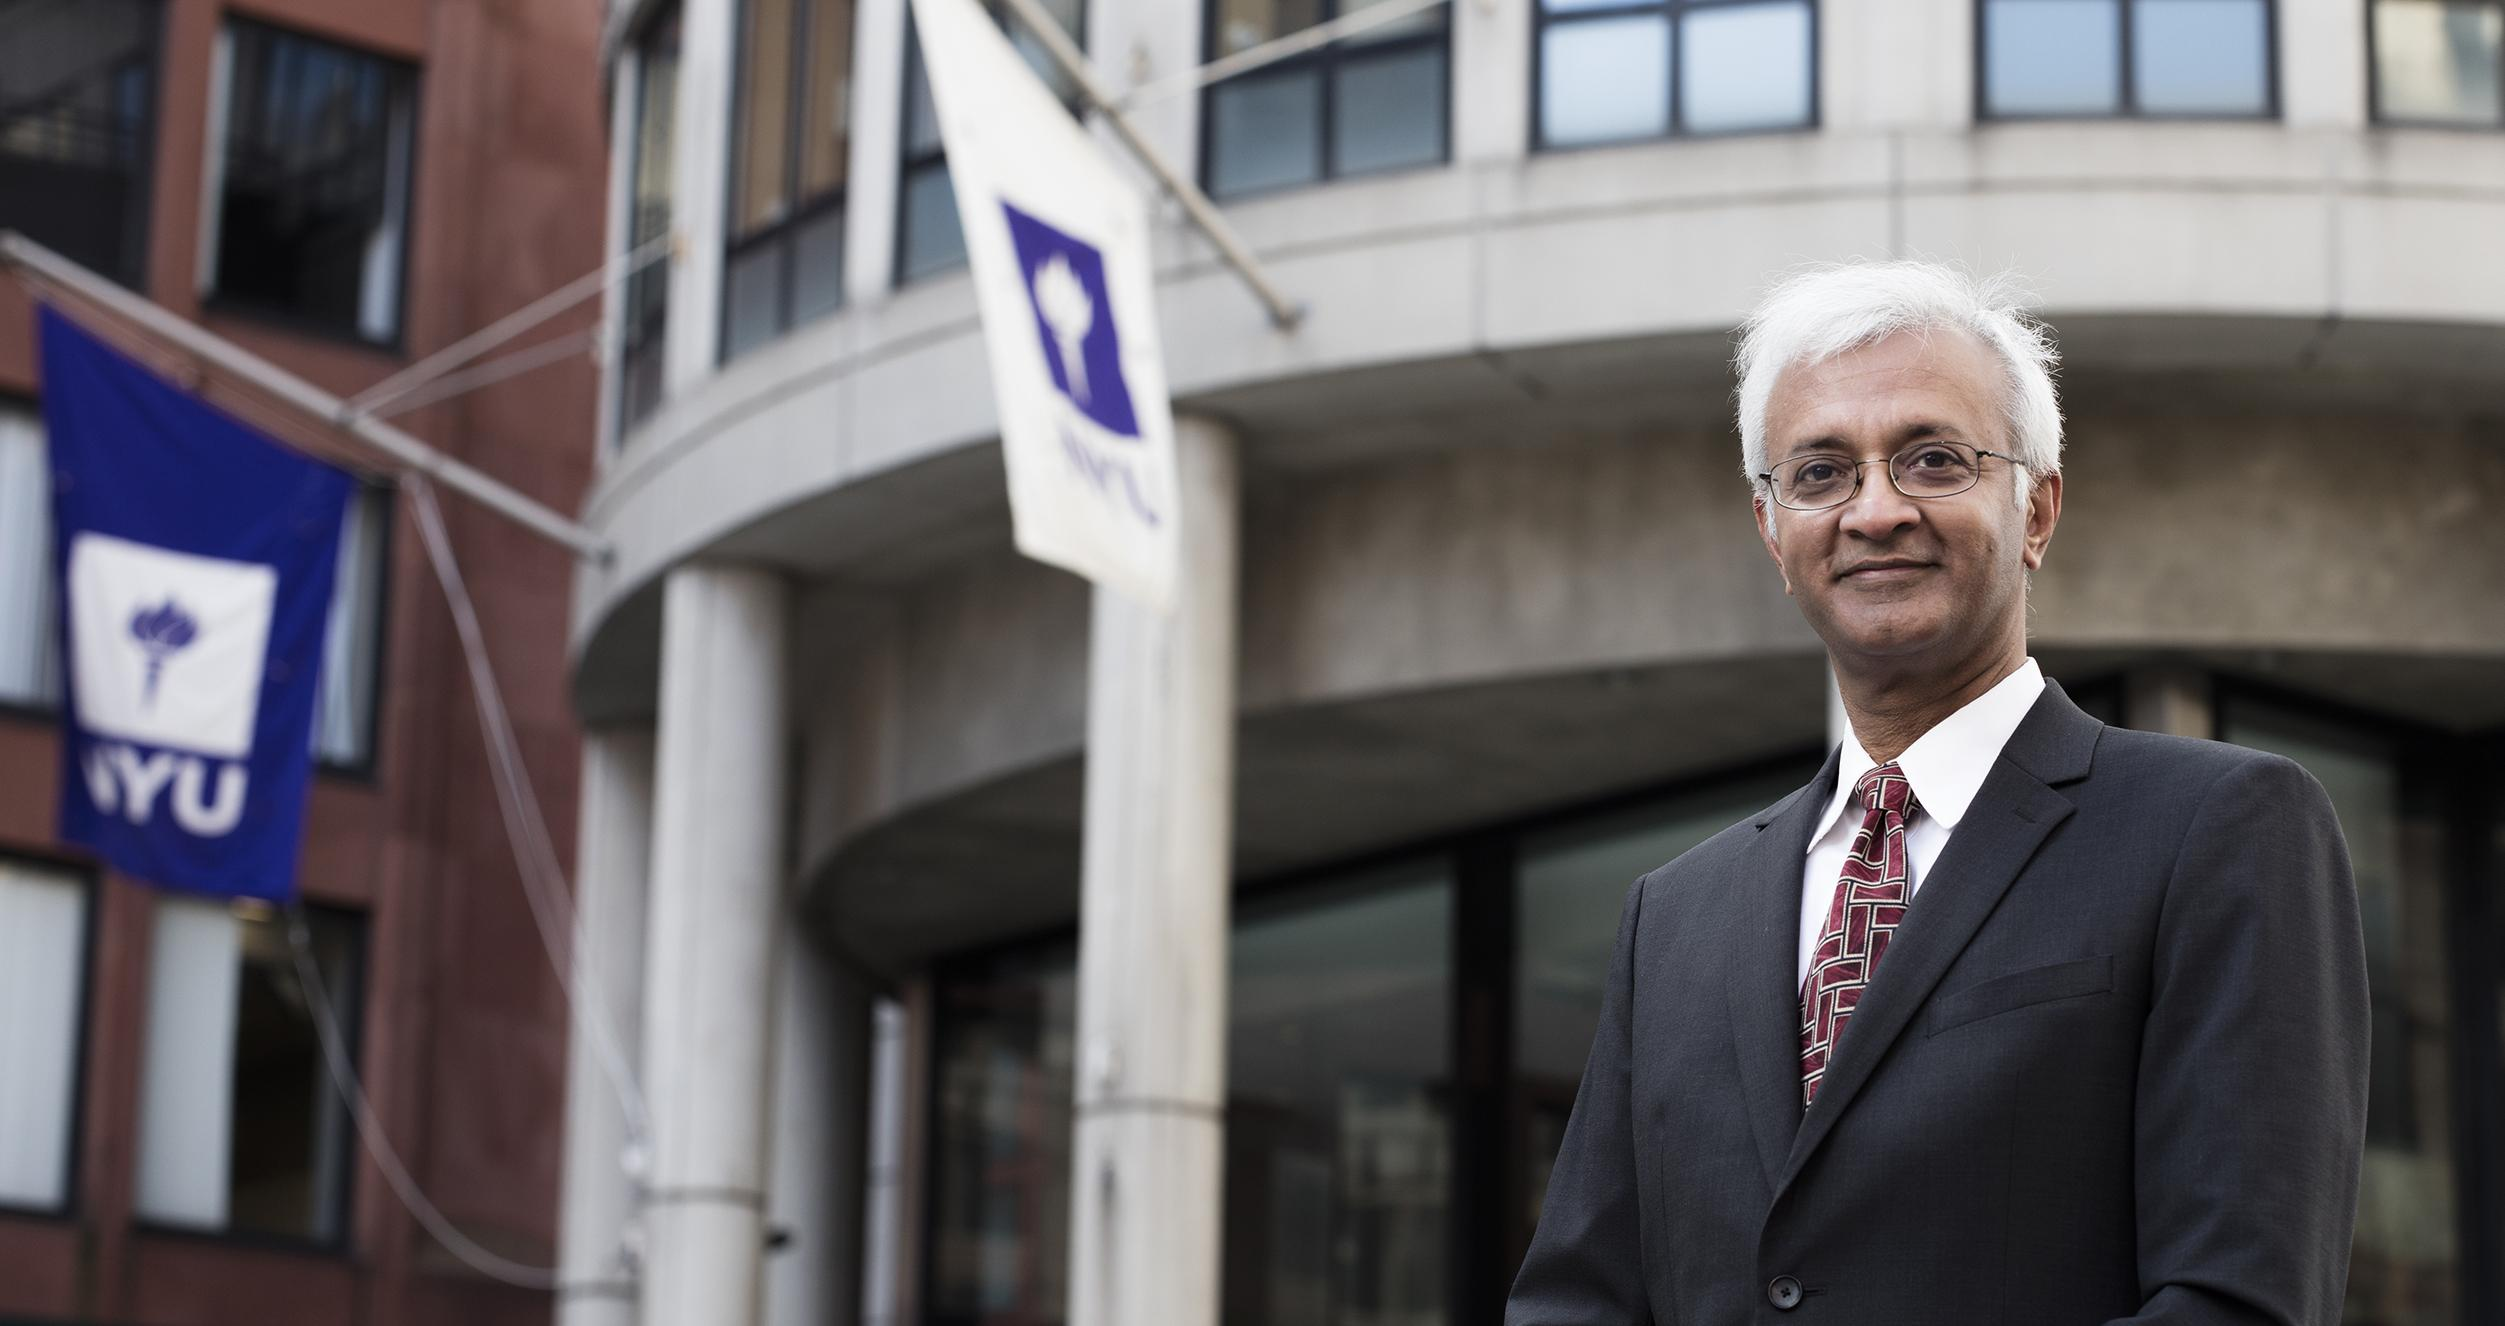 Raghu Sundaram standing in front of Kaufman Management Center